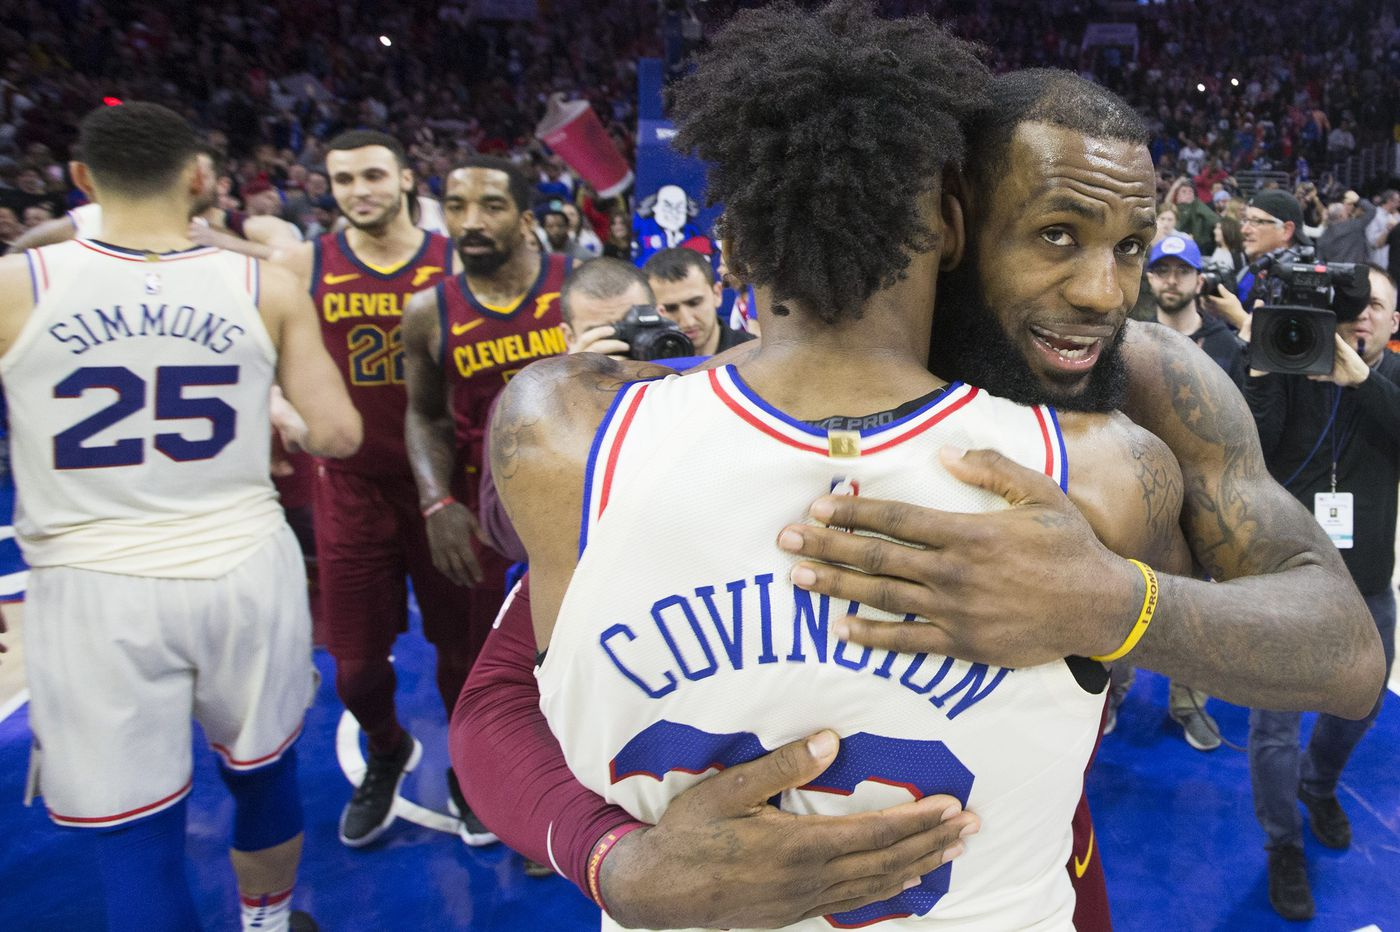 LeBron James' free agency inches closer. Could he land with the Sixers?